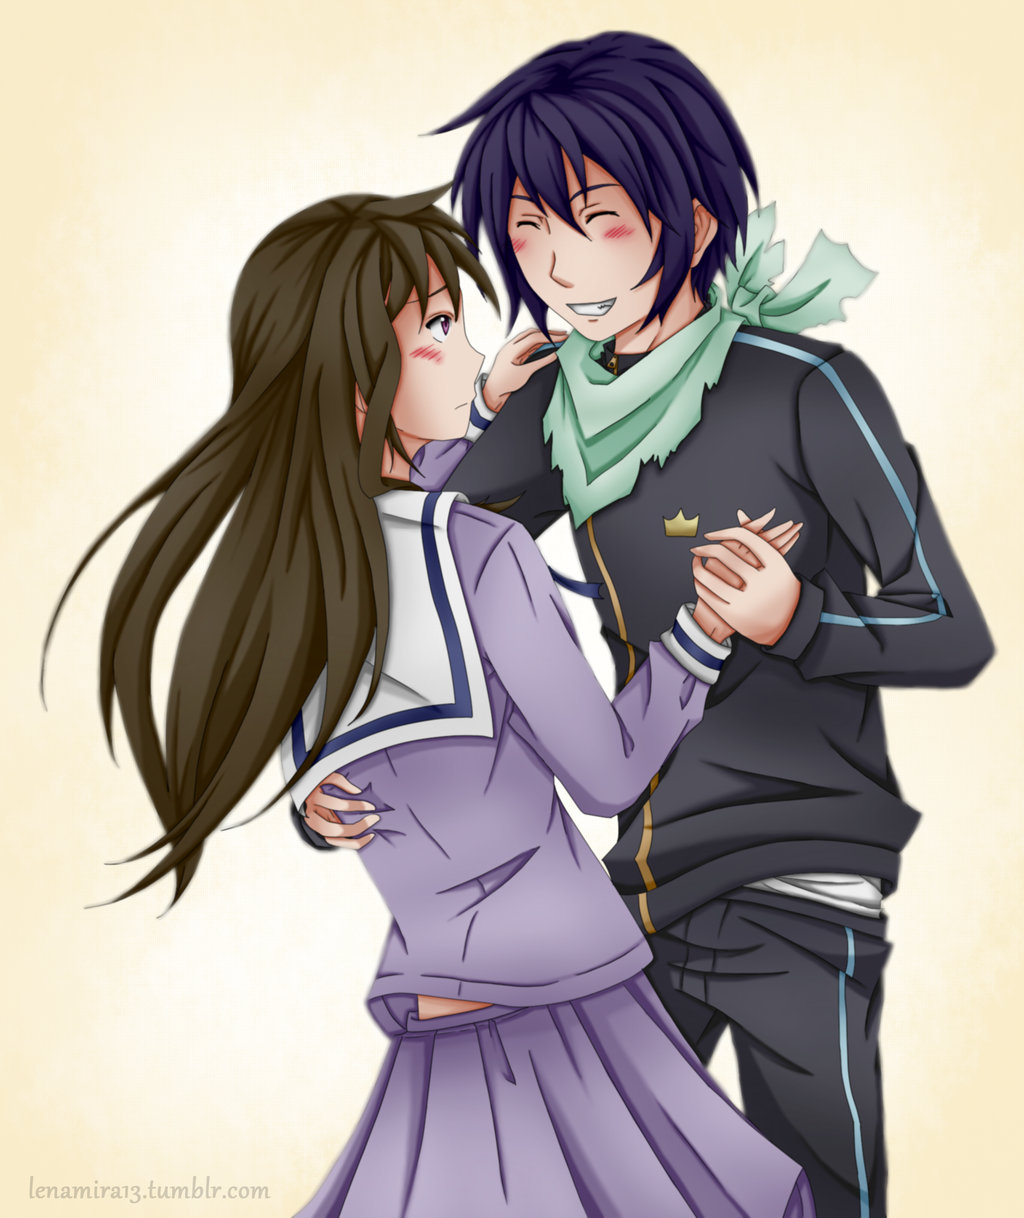 hiyori and yato relationship quiz